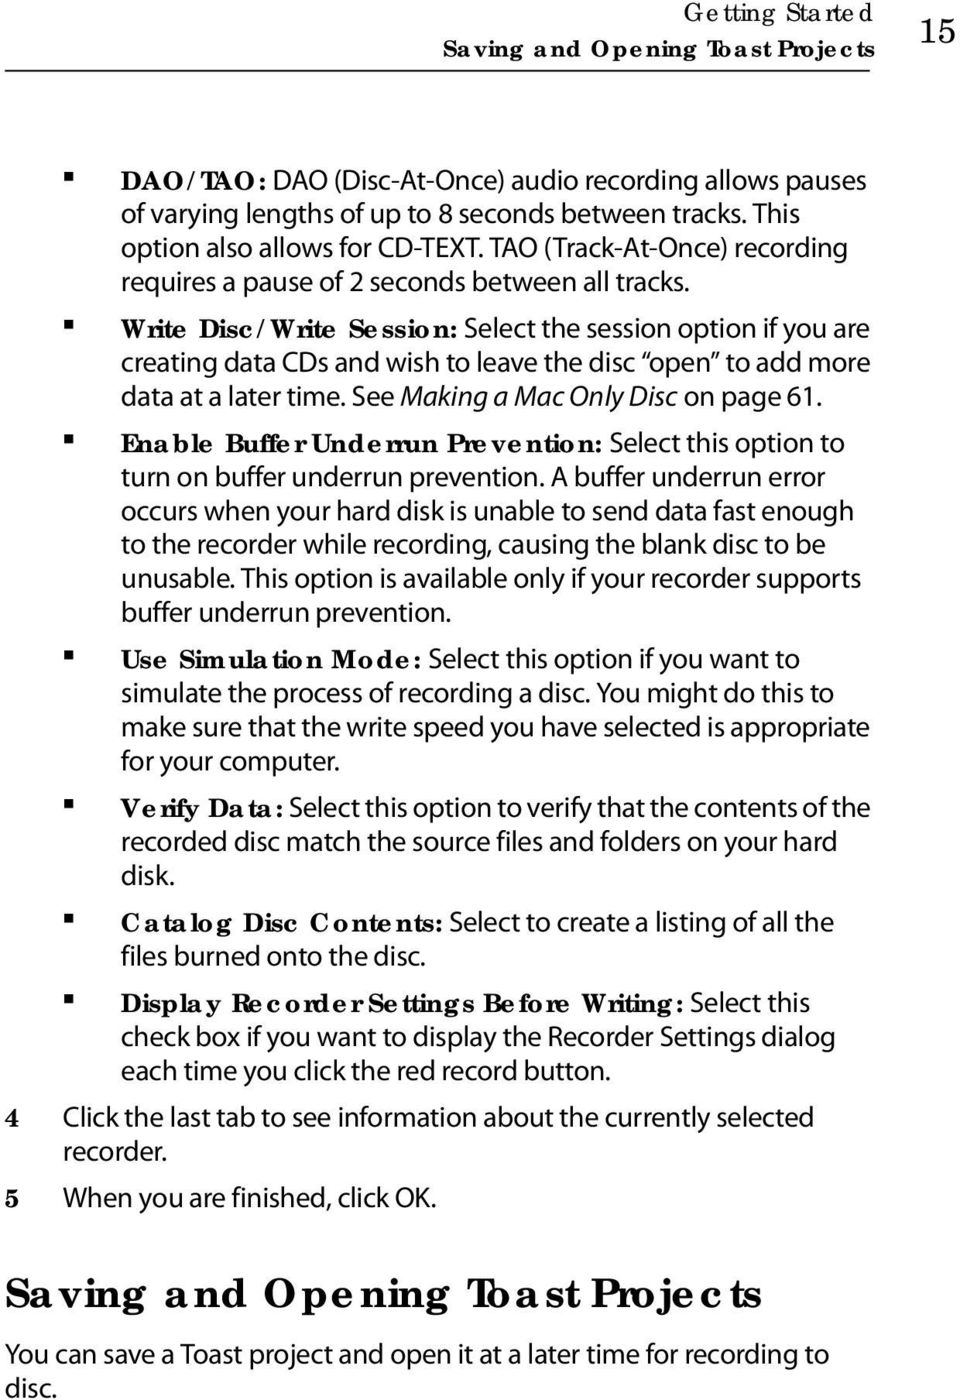 Write Disc/Write Session: Select the session option if you are creating data CDs and wish to leave the disc open to add more data at a later time. See Making a Mac Only Disc on page 61.